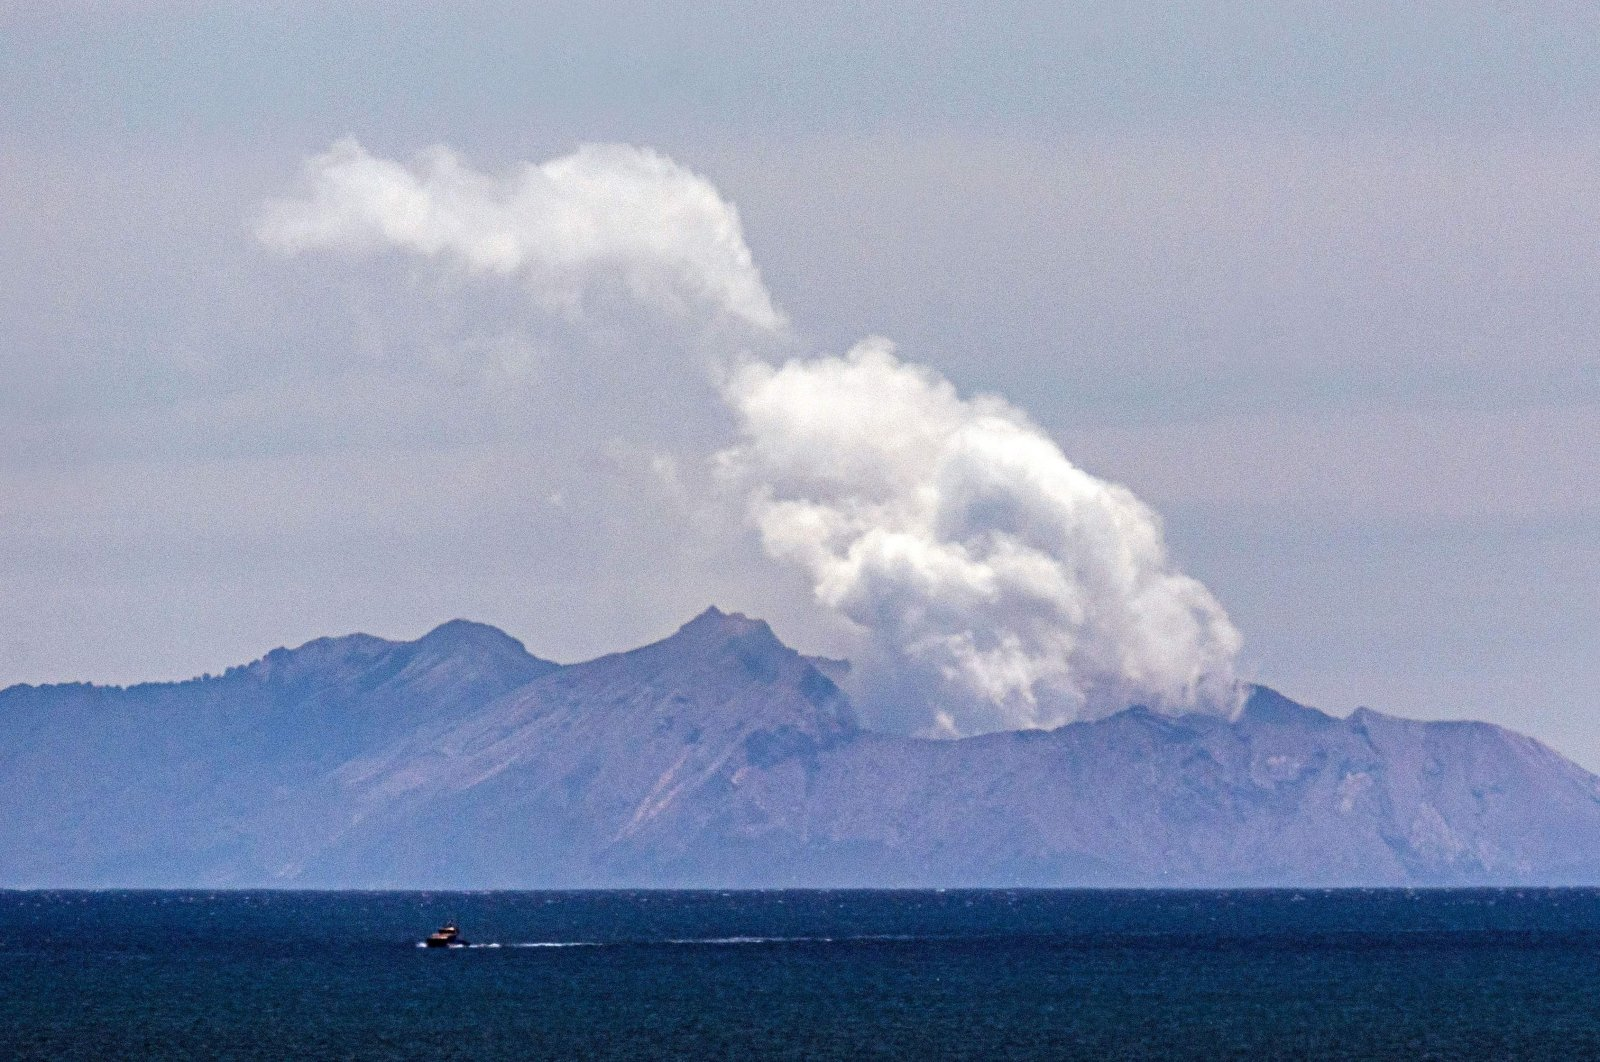 In this file photo, steam rises from the White Island volcano following a volcanic eruption on Dec. 9, 2019, in Whakatane, Dec. 11, 2019. (AFP Photo)